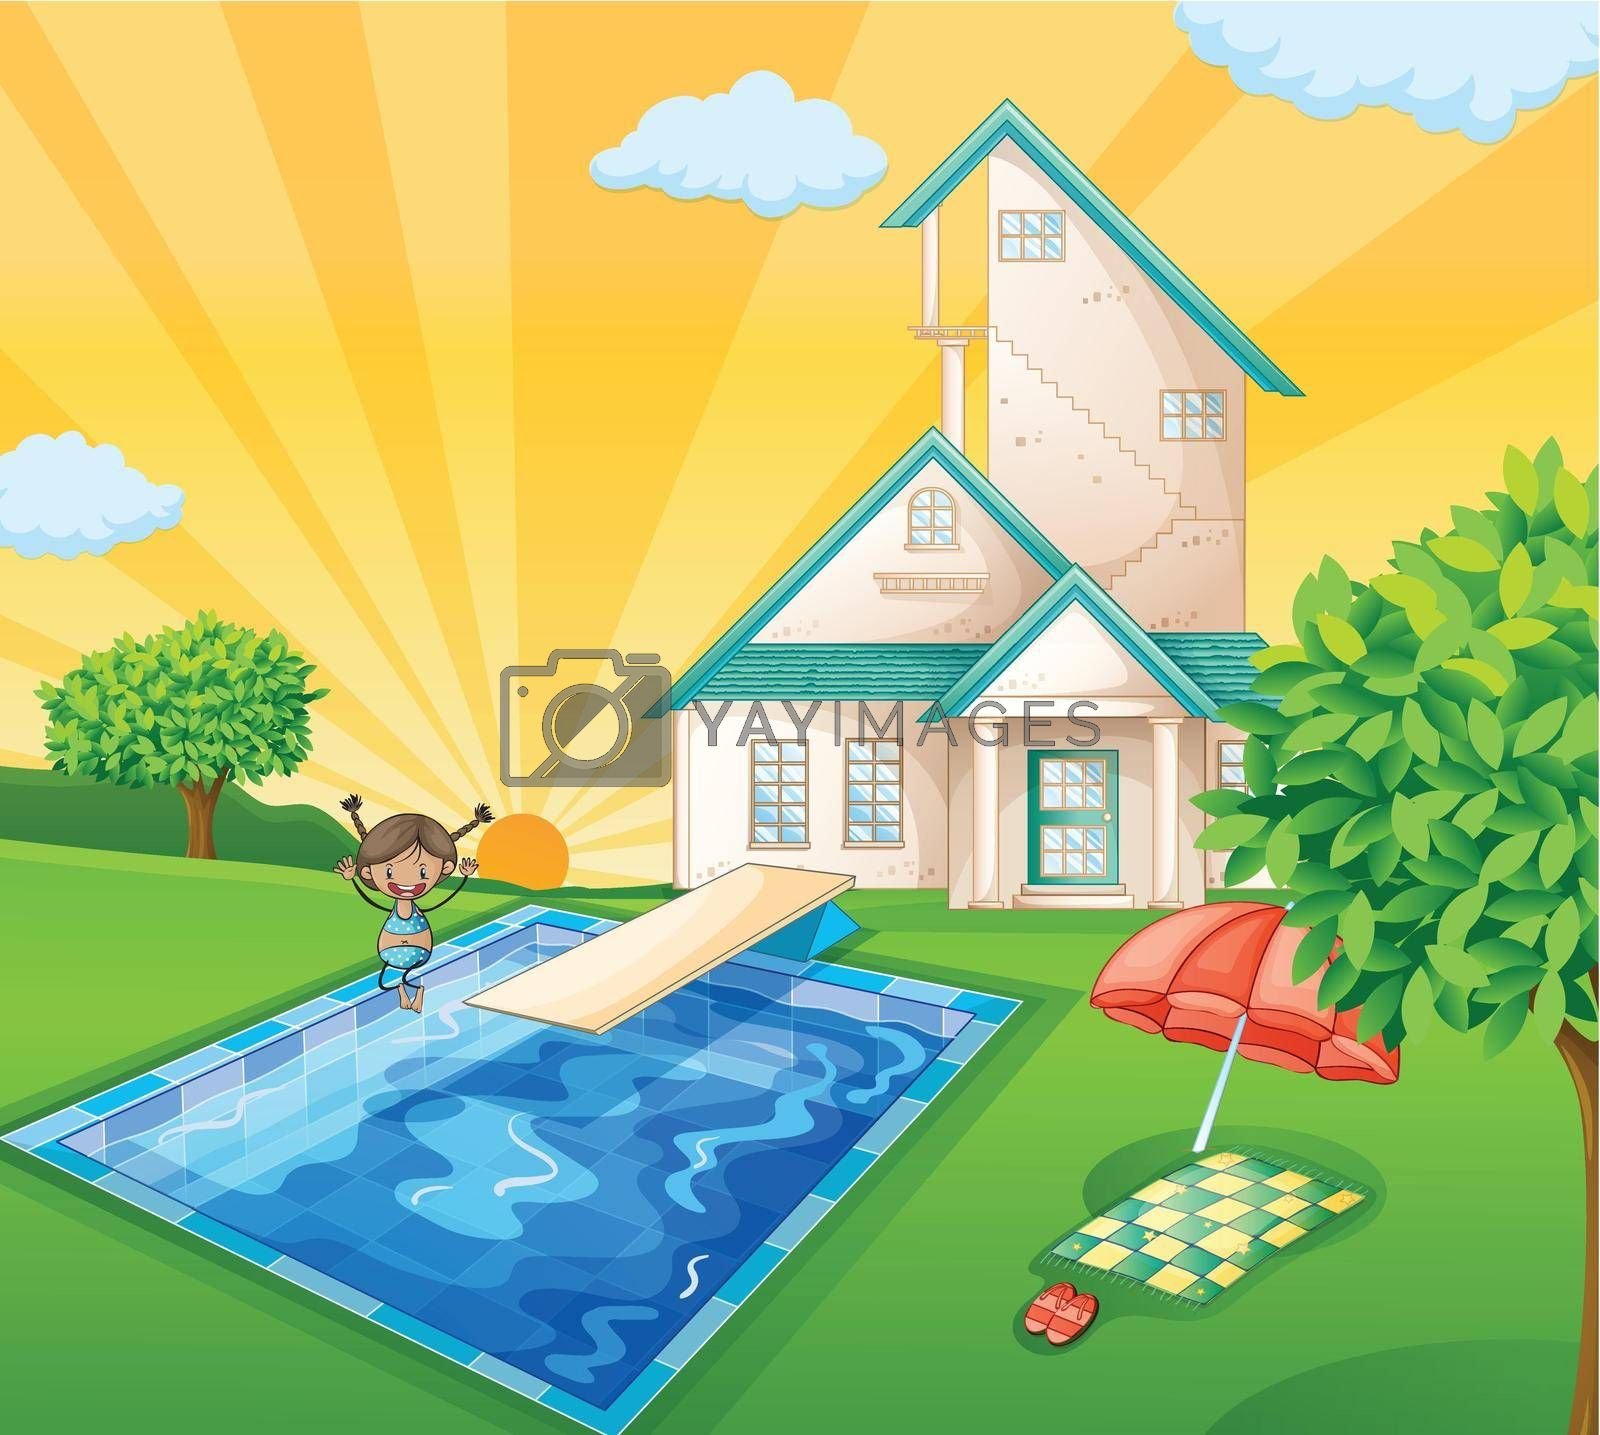 illustration of a house and a girl in a beautiful nature